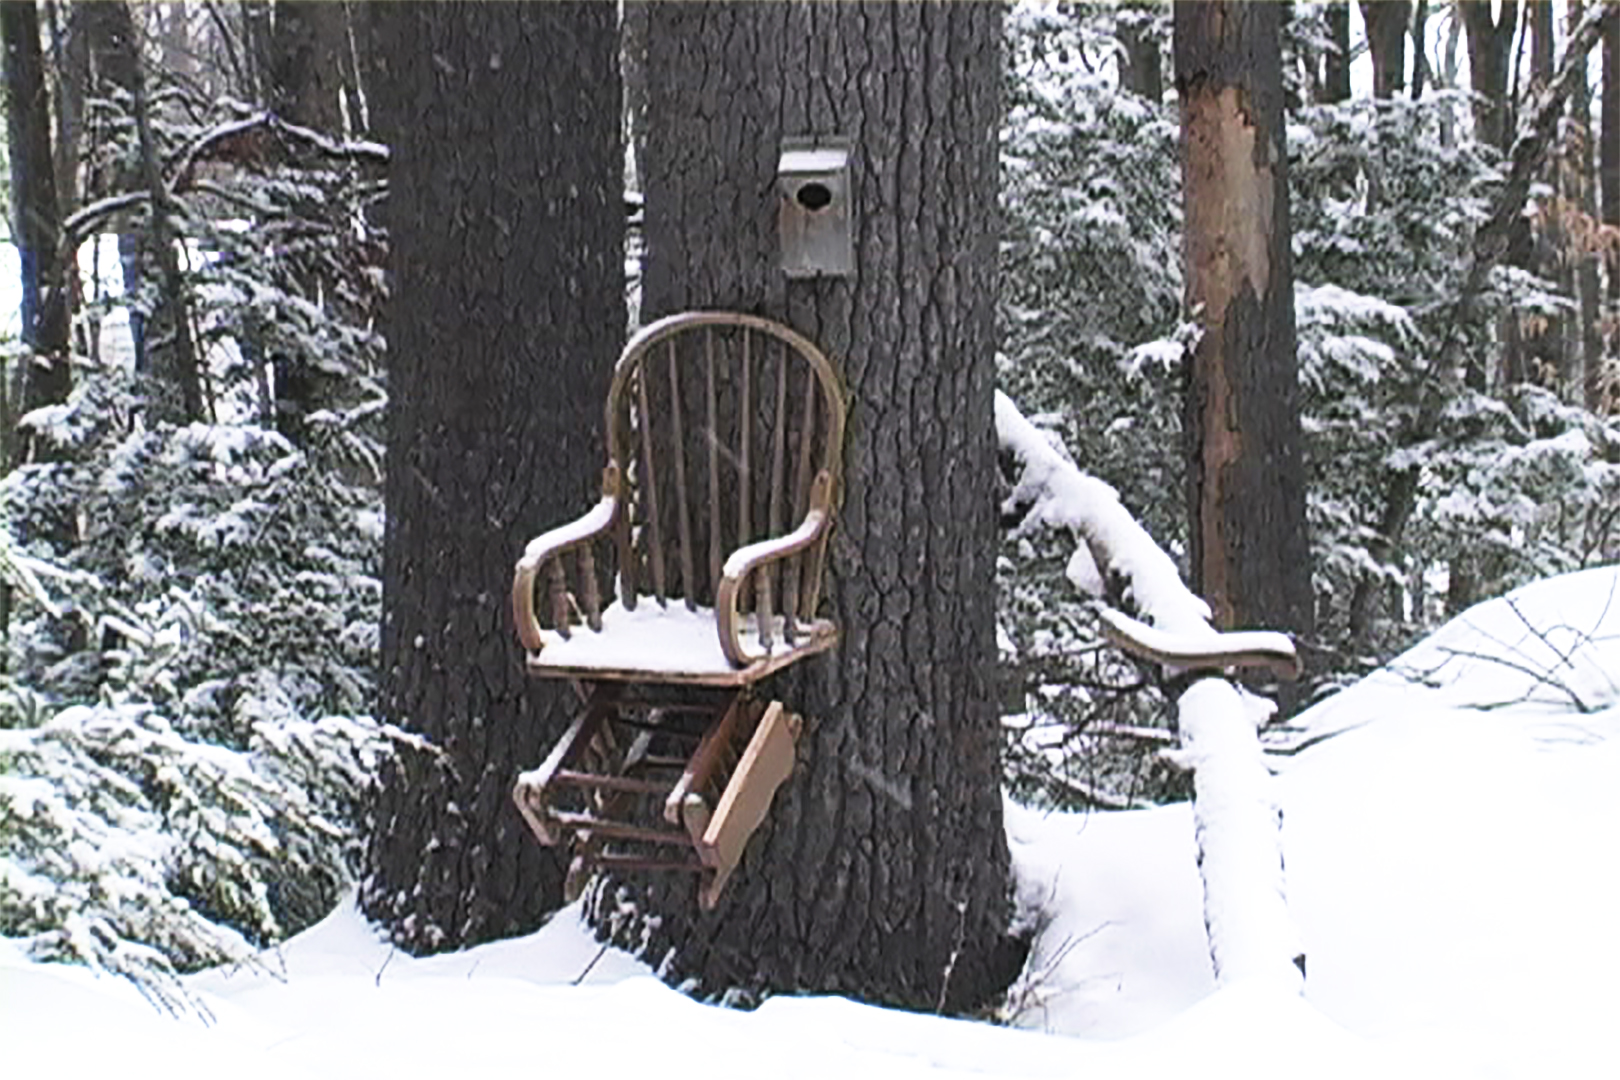 Chairs on Trees, No. 1